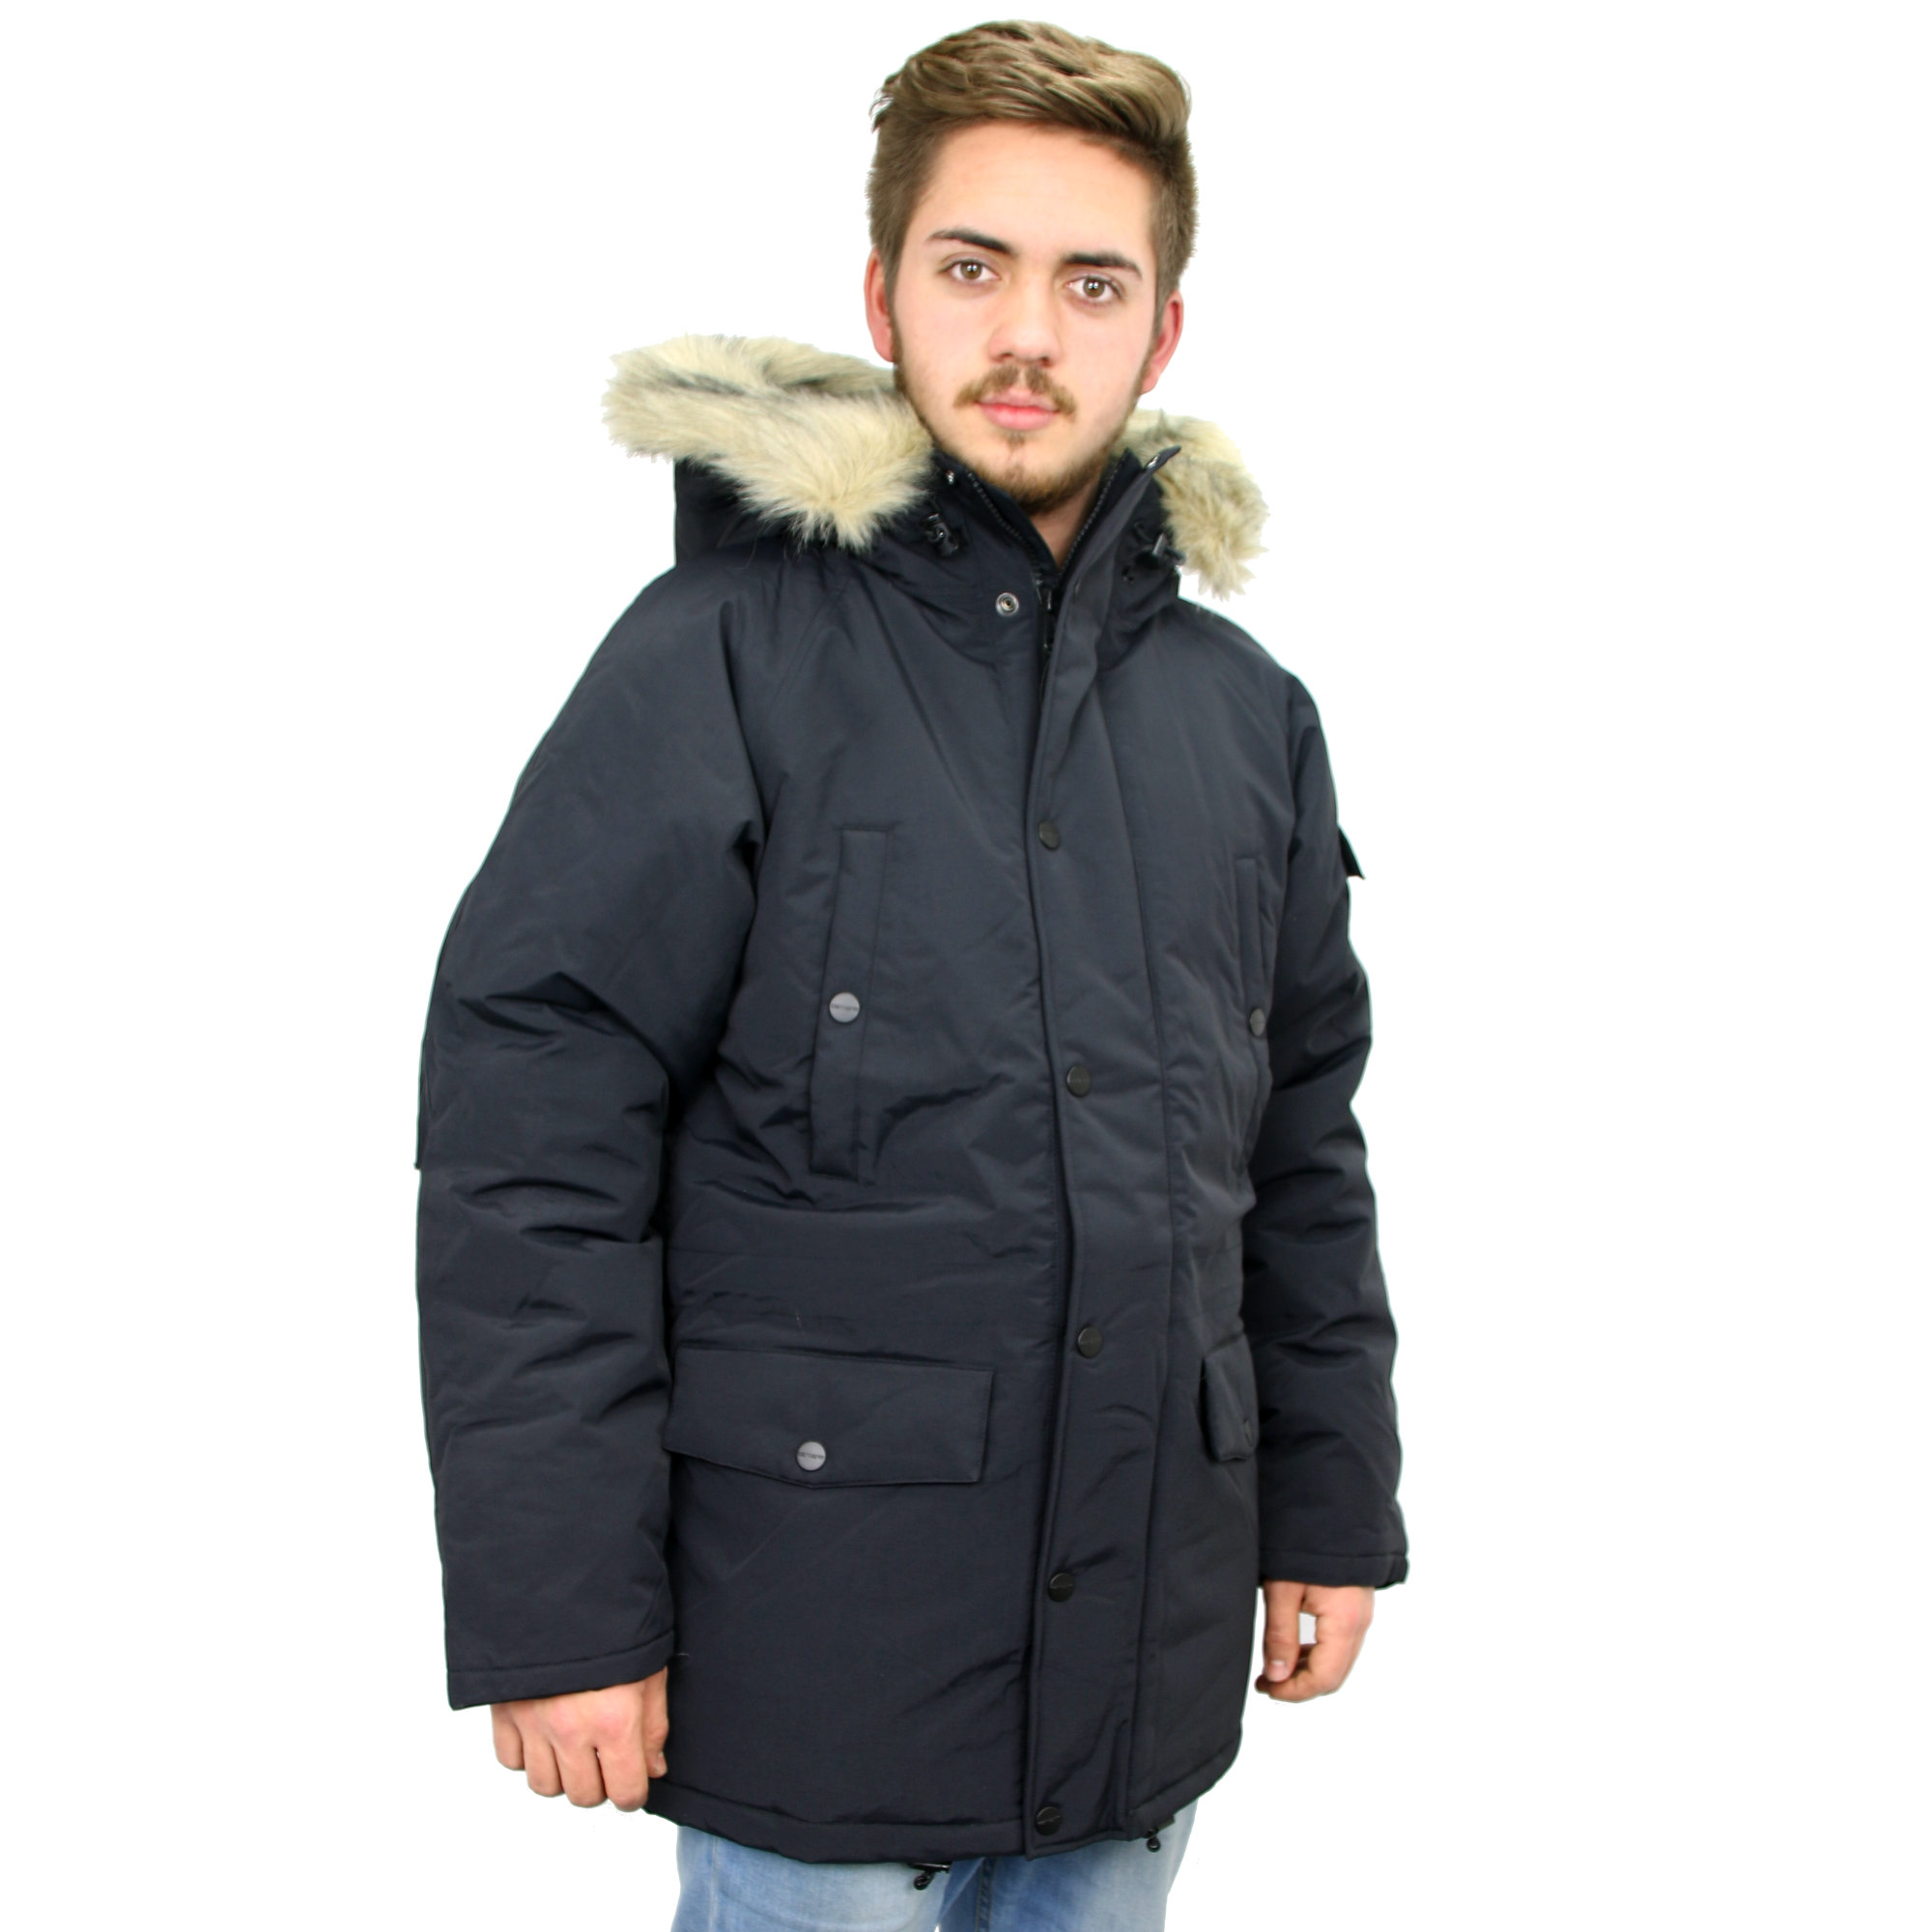 carhartt anchorage parka jacke winterjacke wintermantel. Black Bedroom Furniture Sets. Home Design Ideas